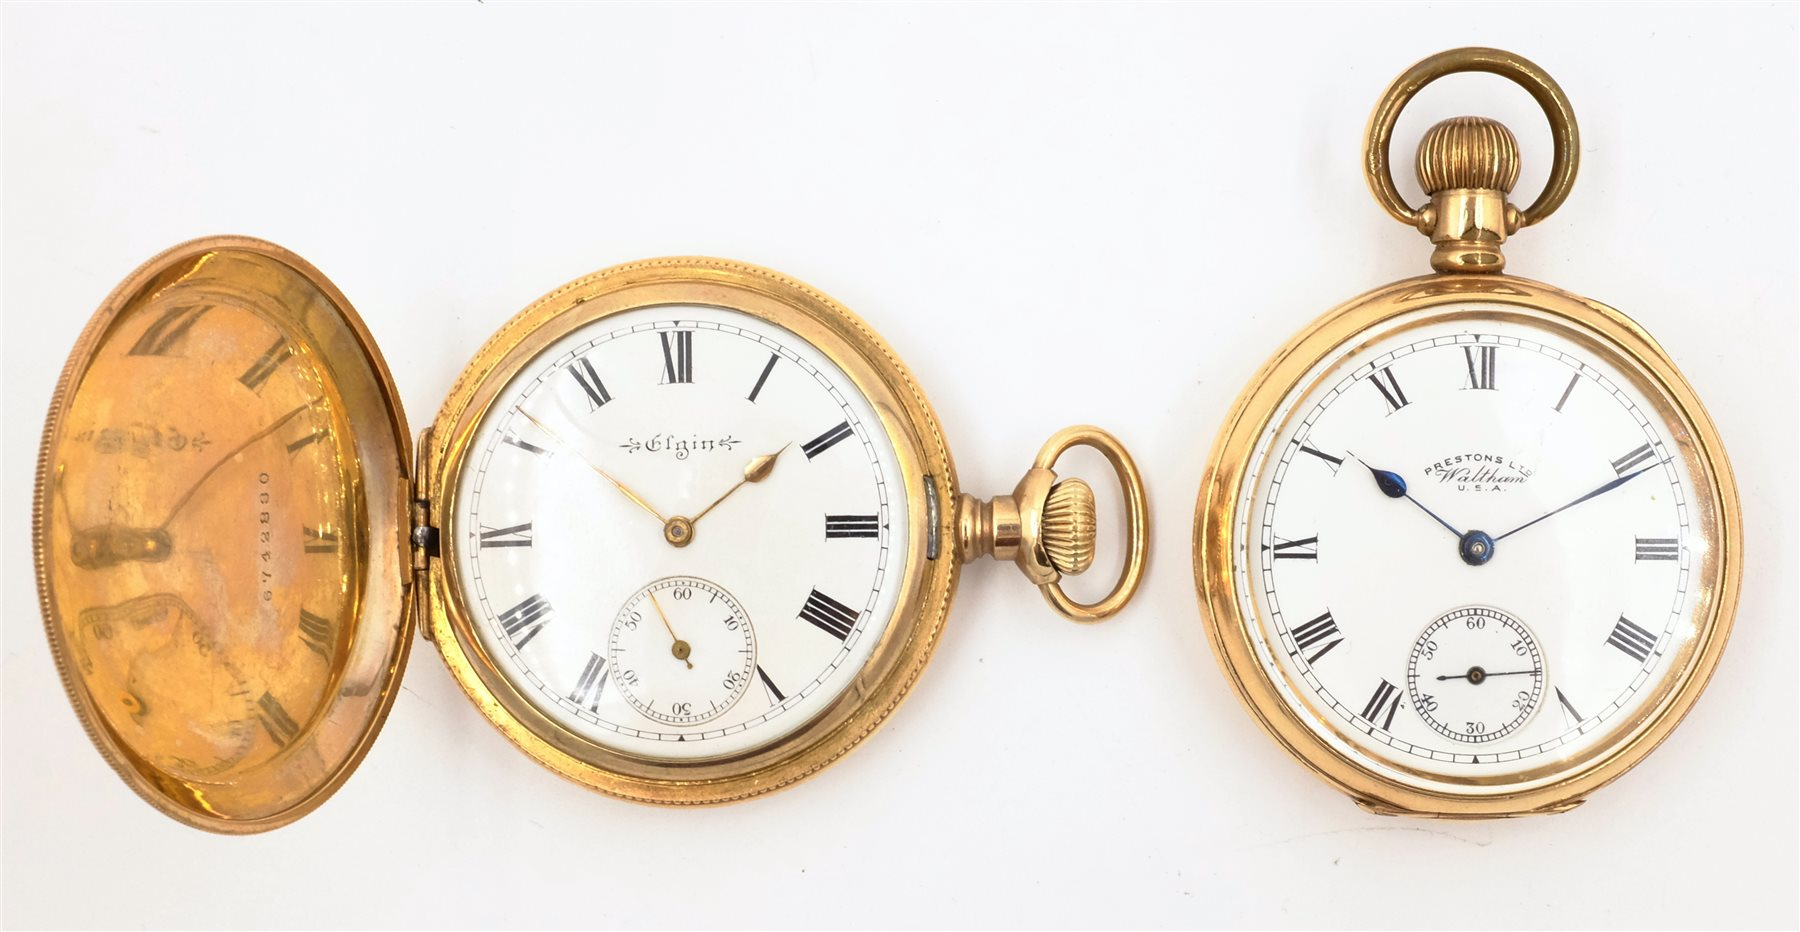 Gold Plated Hunter Pocket Watch By Elgin And A Gold Plated Pocket Watch By Waltham Both Crown Wound Jewellery Silver Clocks Watches